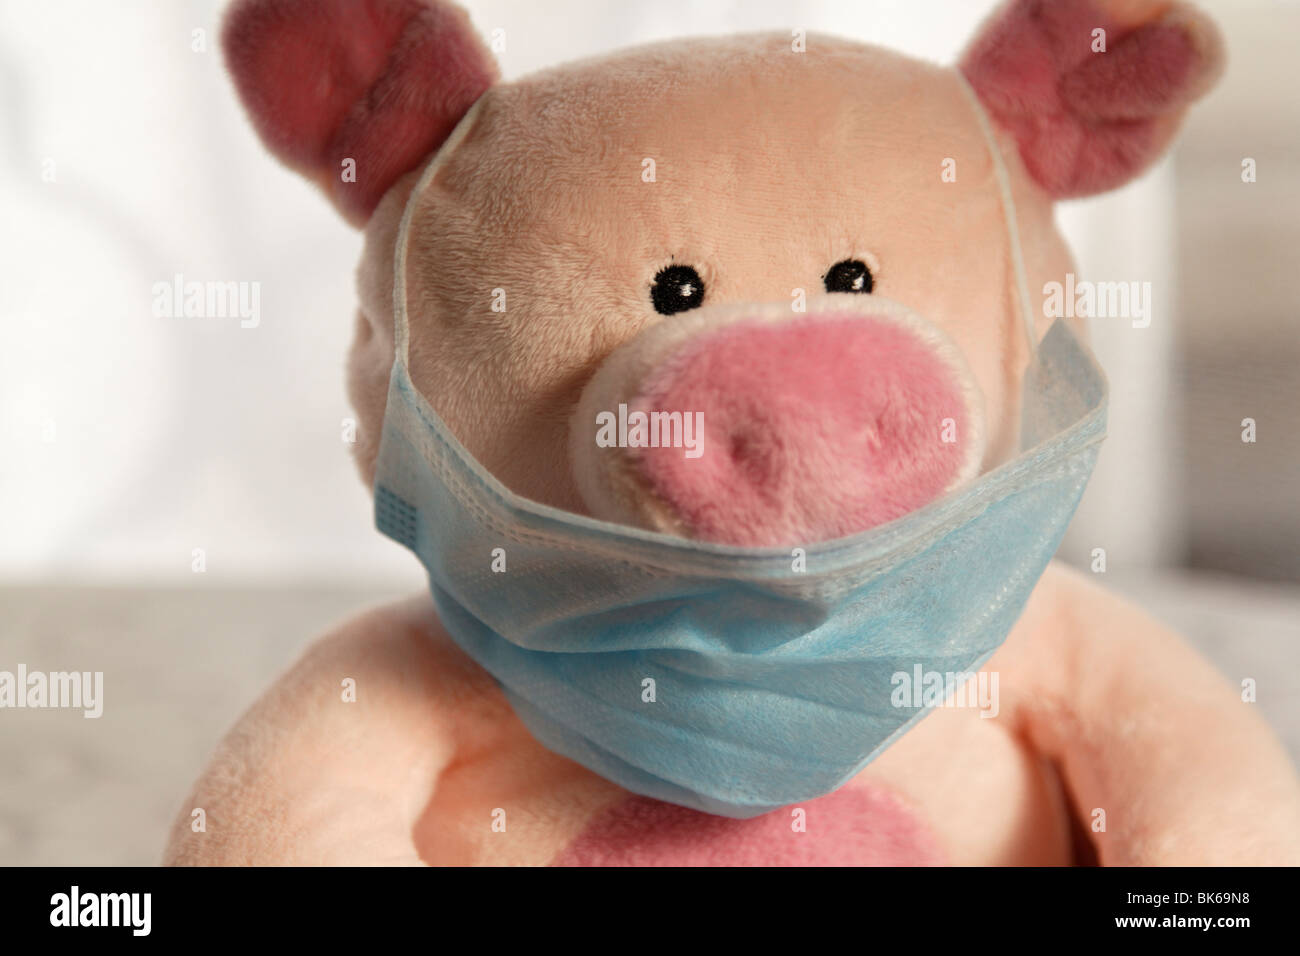 Toy pig with flu mask, head shot. - Stock Image